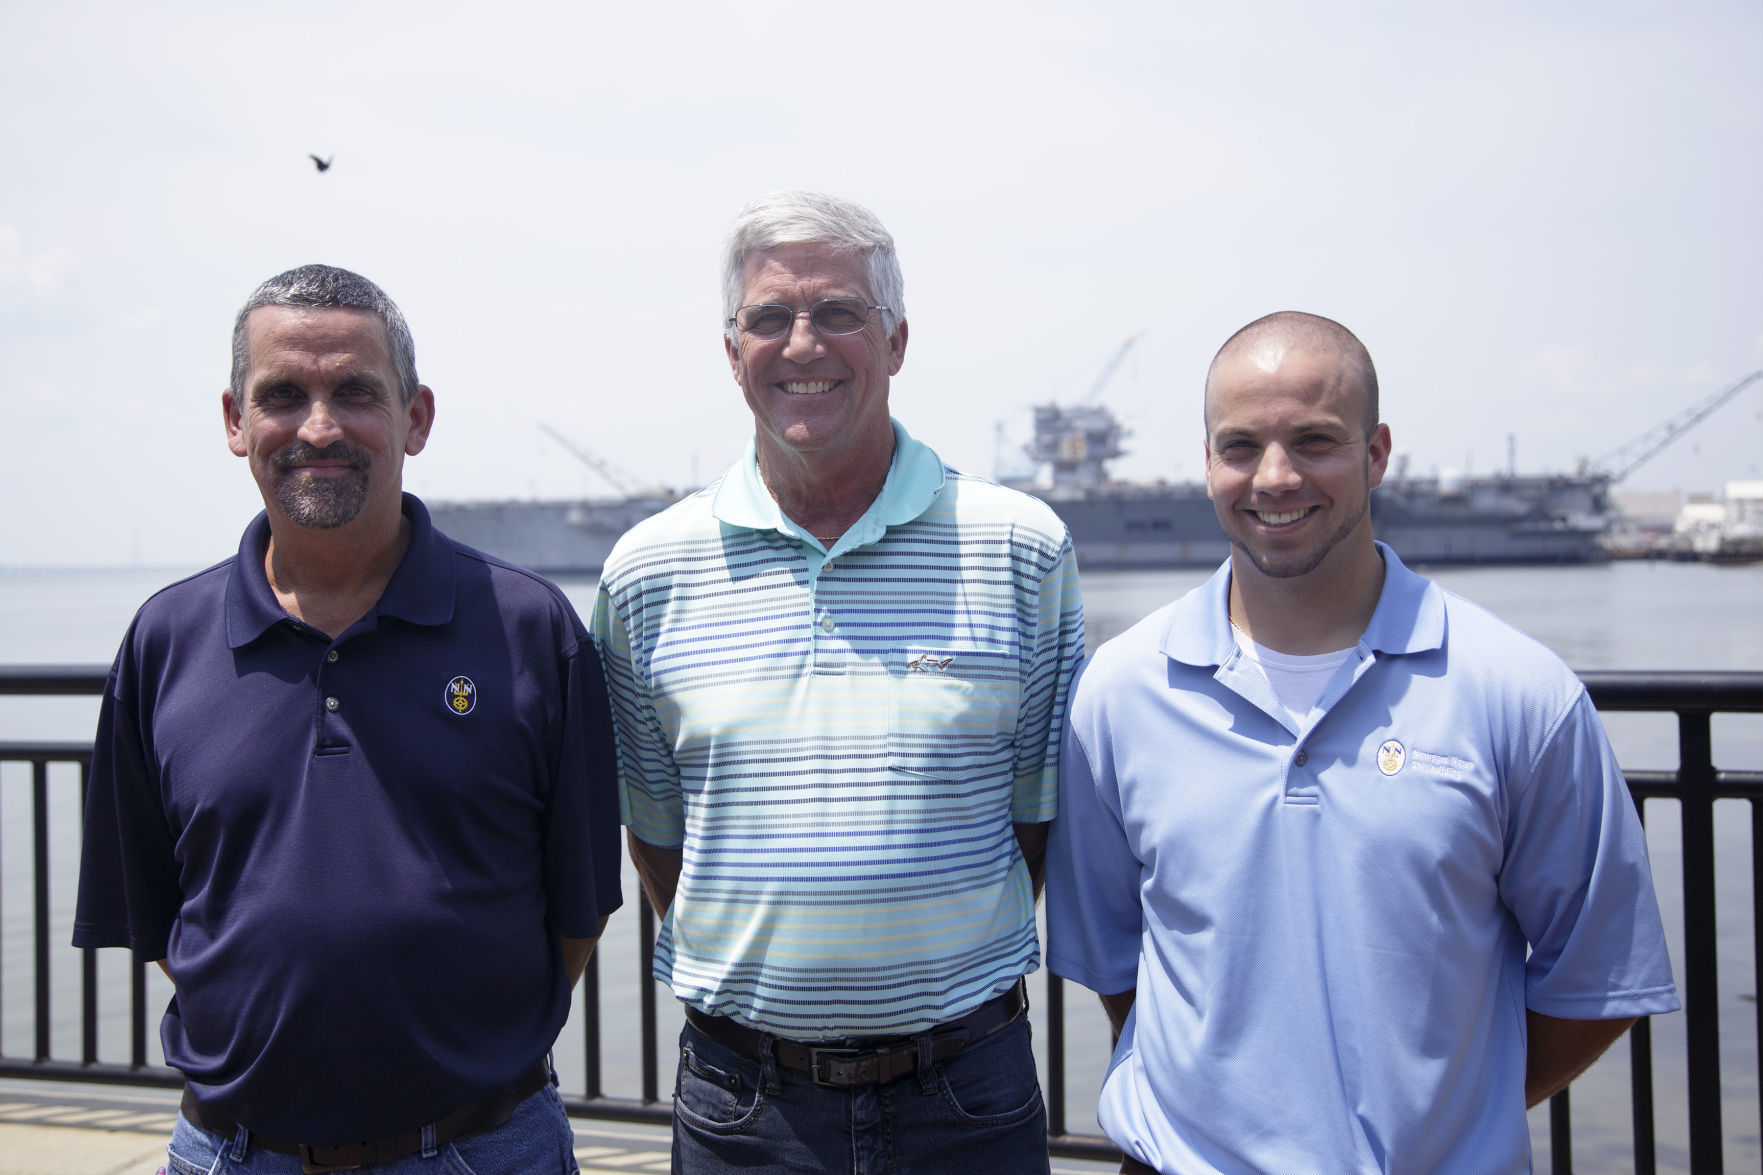 At Newport News Shipbuilding, 4 generations of the Sweeney